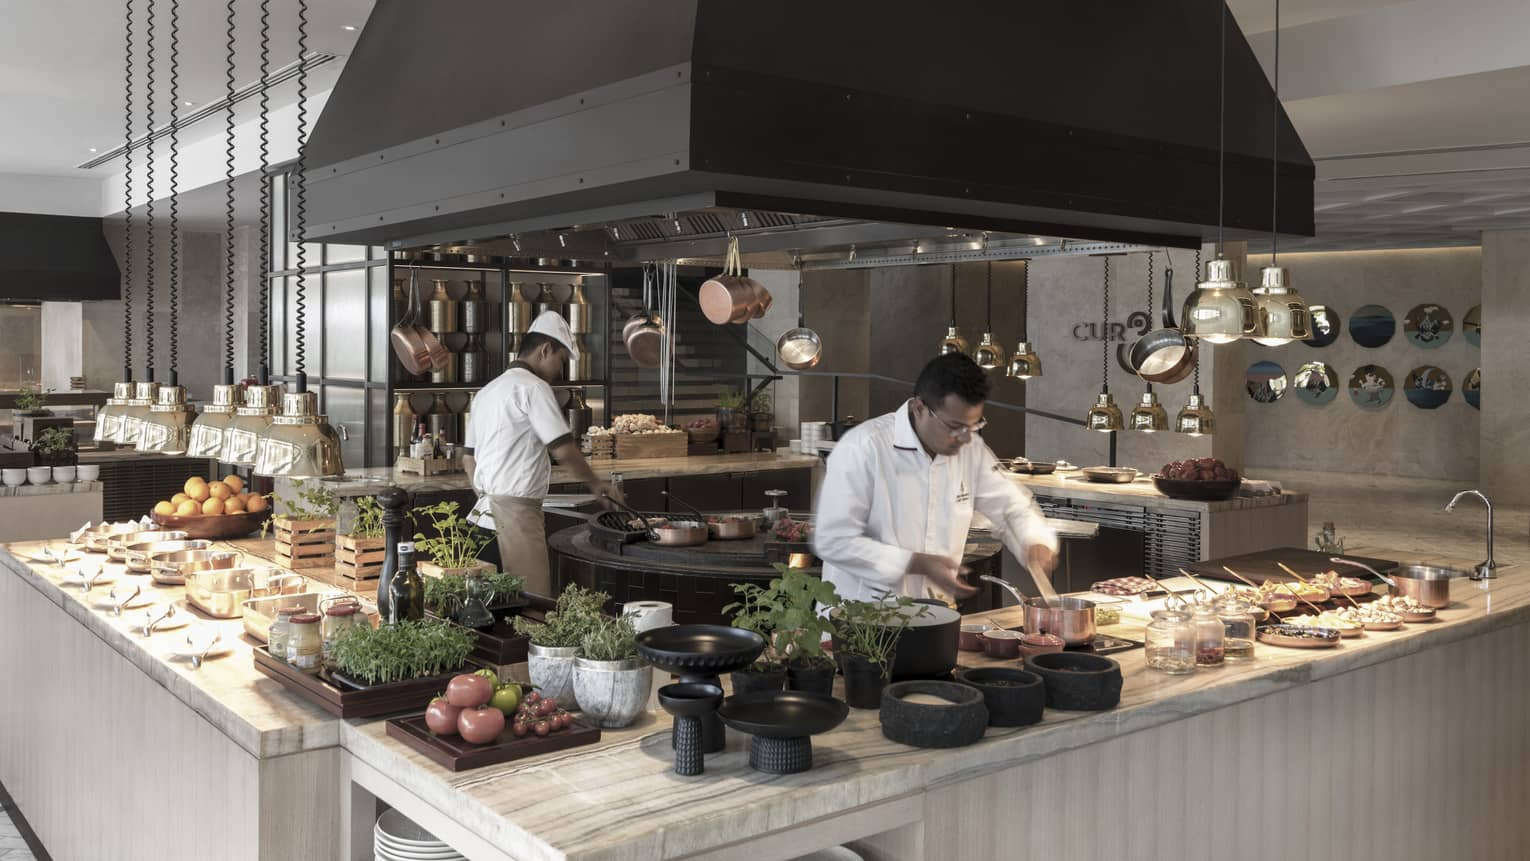 Chefs prepare meat and vegetable dishes an open kitchen